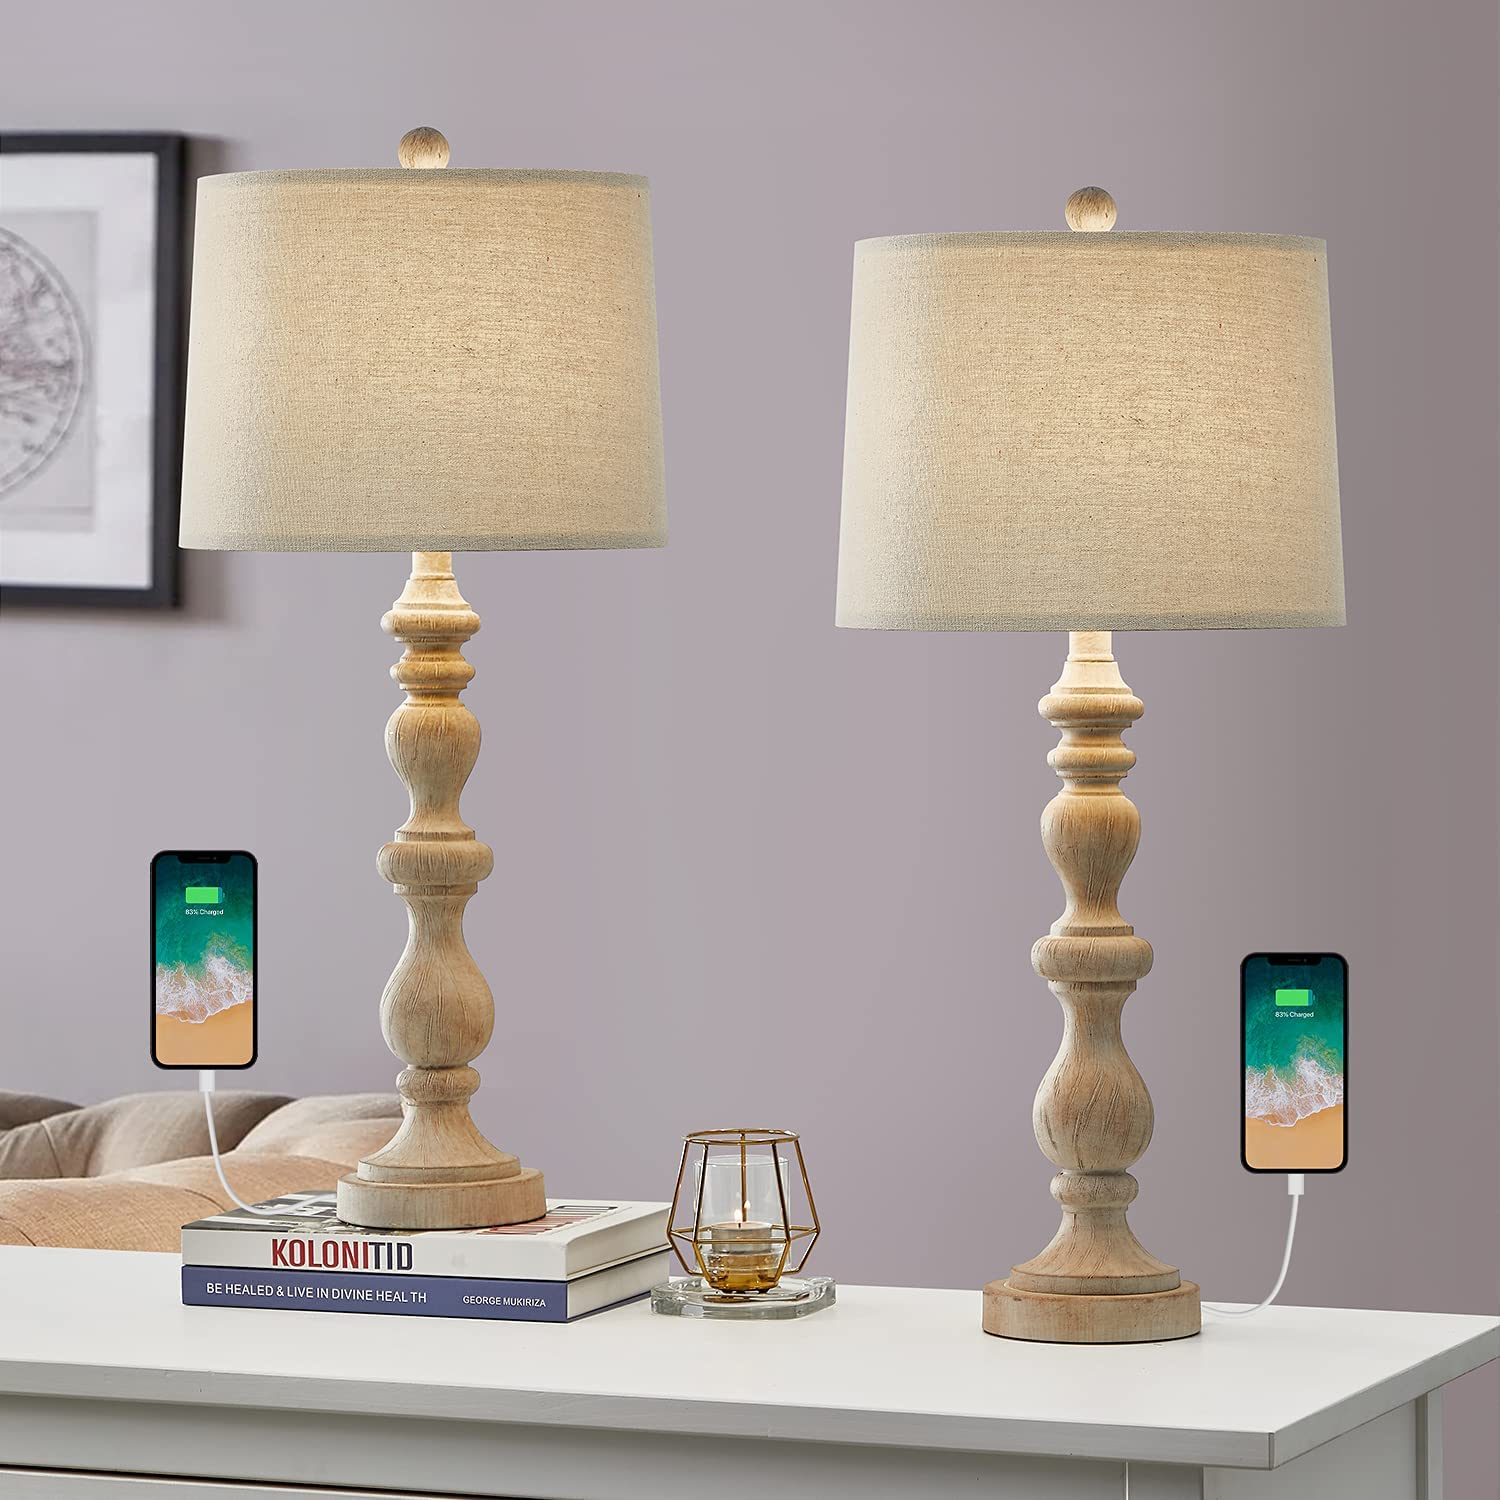 OYEARS USB 27.75'' Rustic Outlet ☆ Free Shipping Table Lamp Set 2 Room Ranking TOP9 for of Re Living